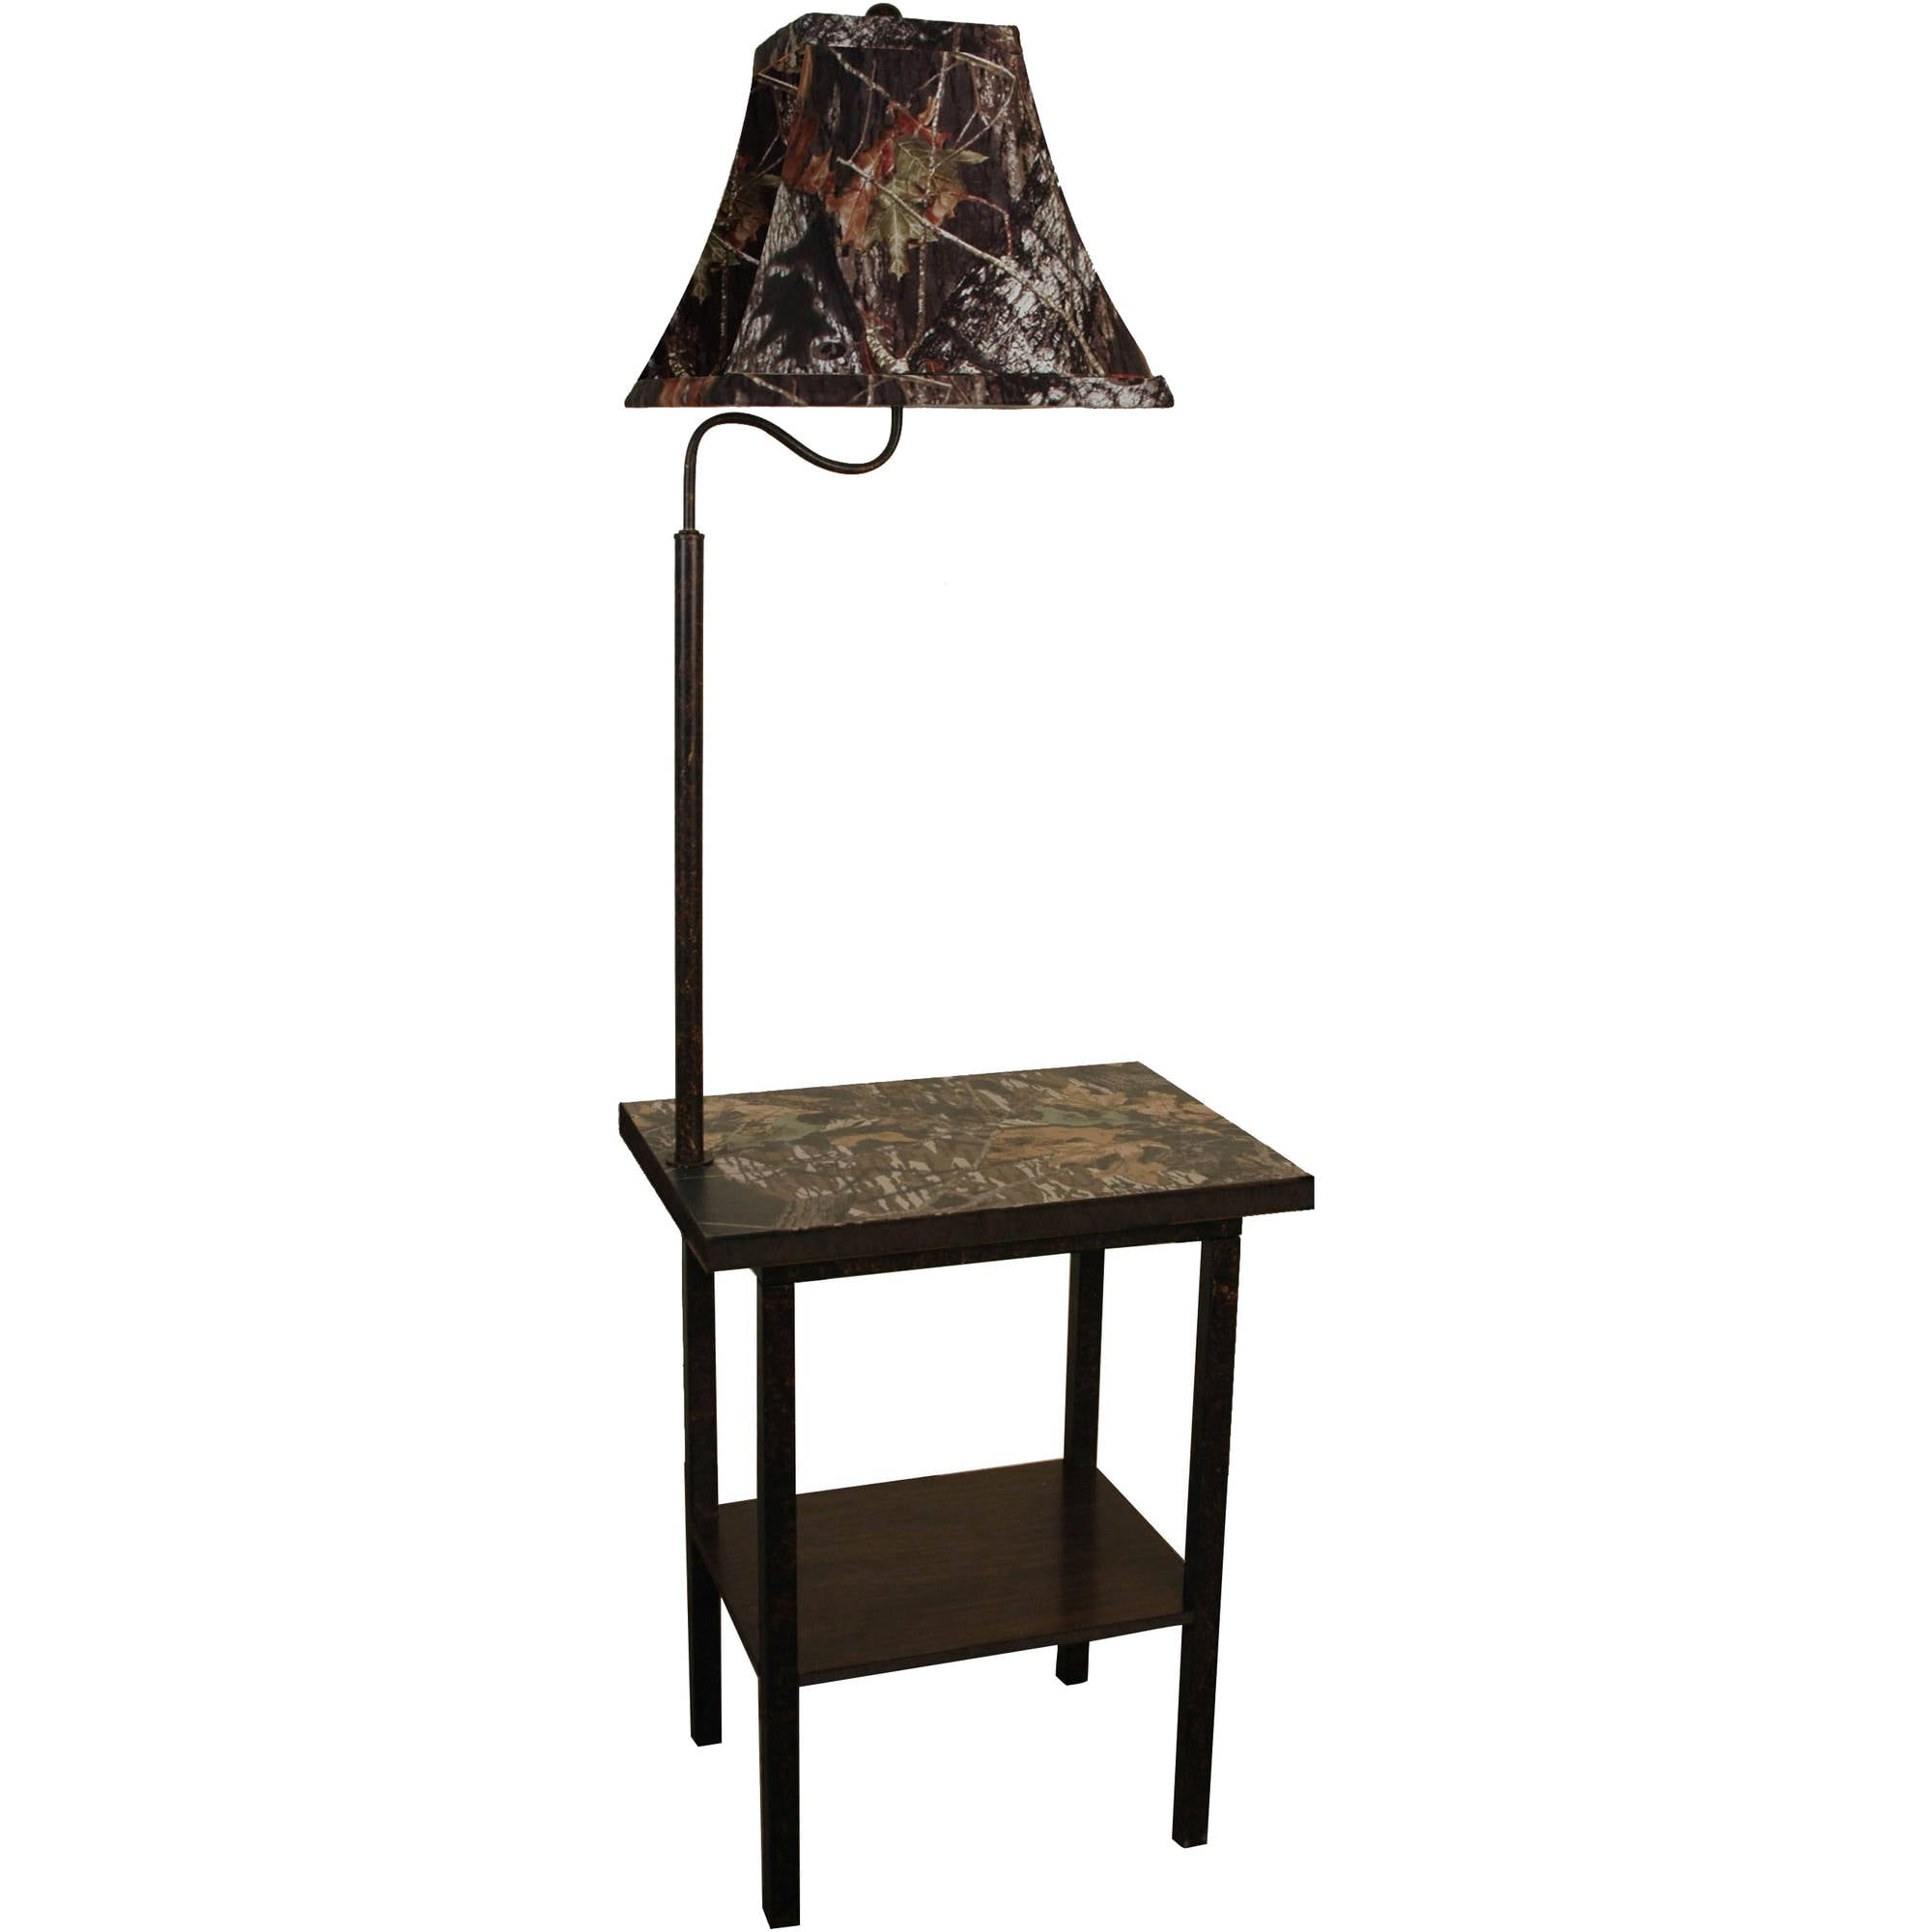 Mossy Oak Furniture Floor Lamp, Brown - Walmart.com